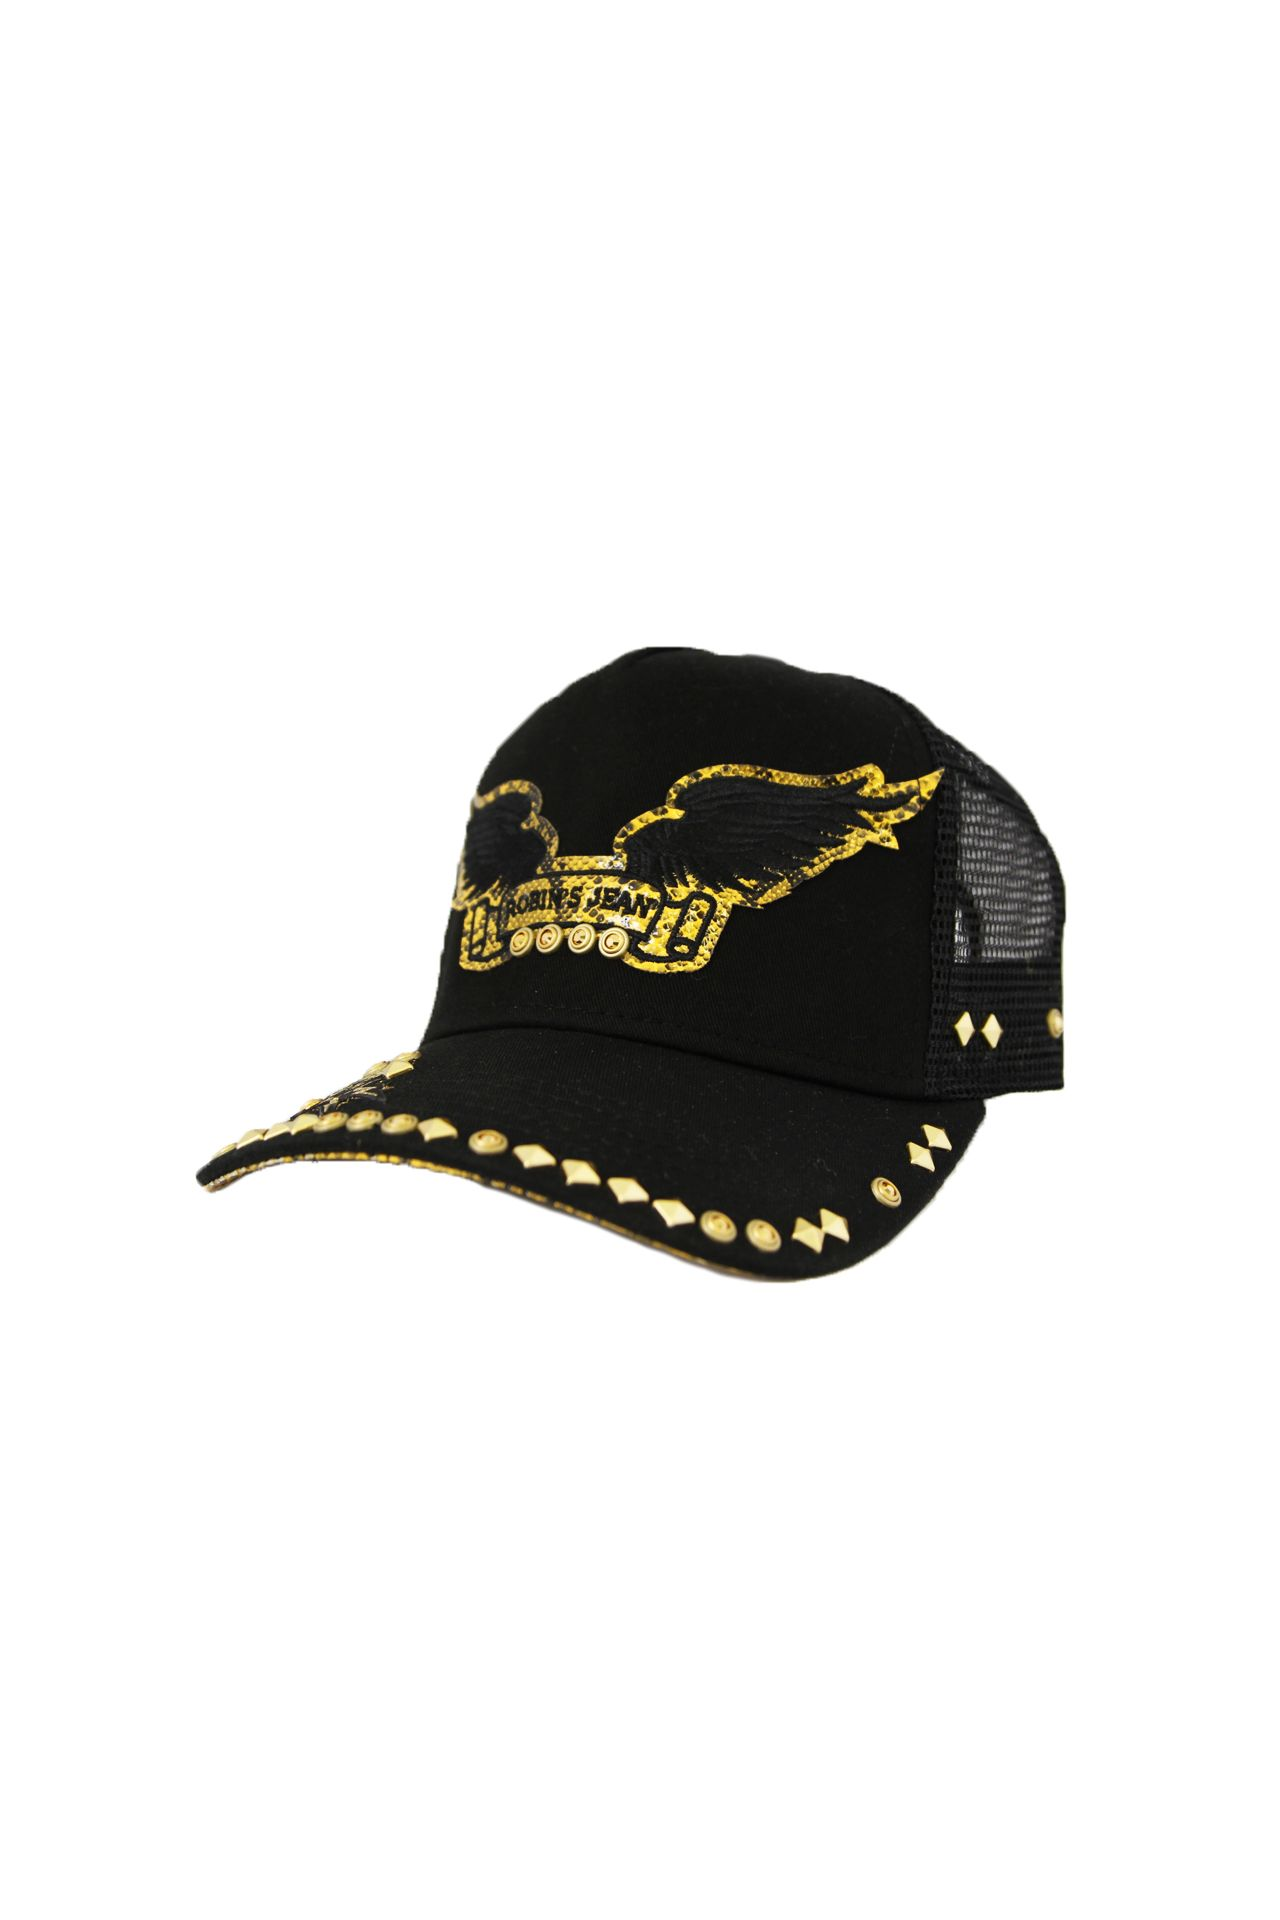 BLACK TWILL CAP STUDS WITH YELLOW UNDER VISOR